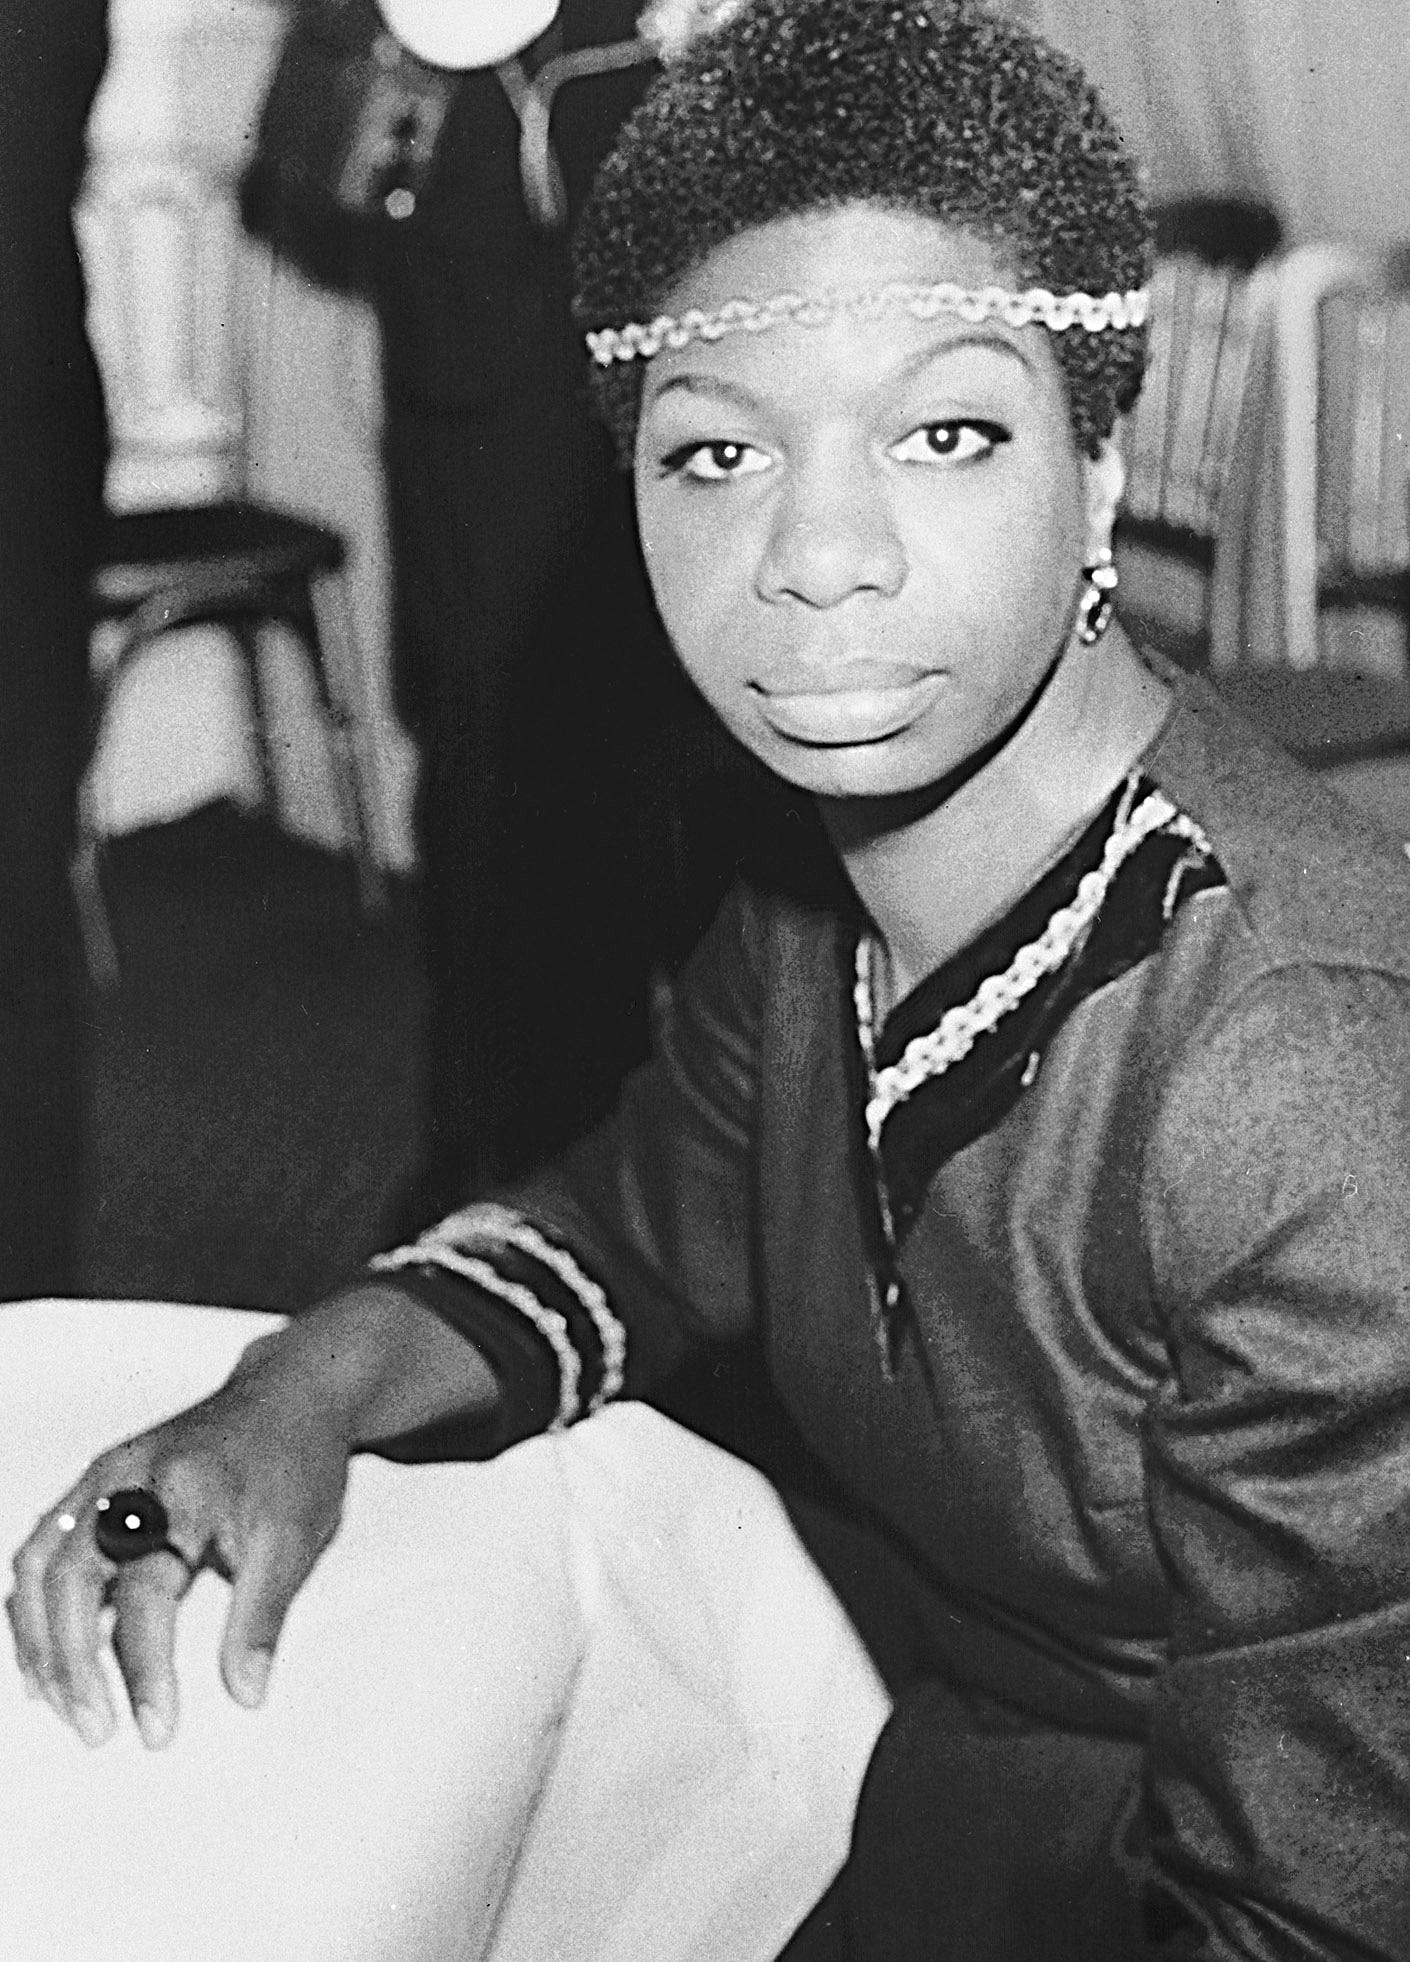 Jazz singer Nina Simone is shown in London on Dec. 5, 1968, photo.  Simone's deep, raspy, forceful voice made her a unique figure in jazz and later helped define the civil rights movement.